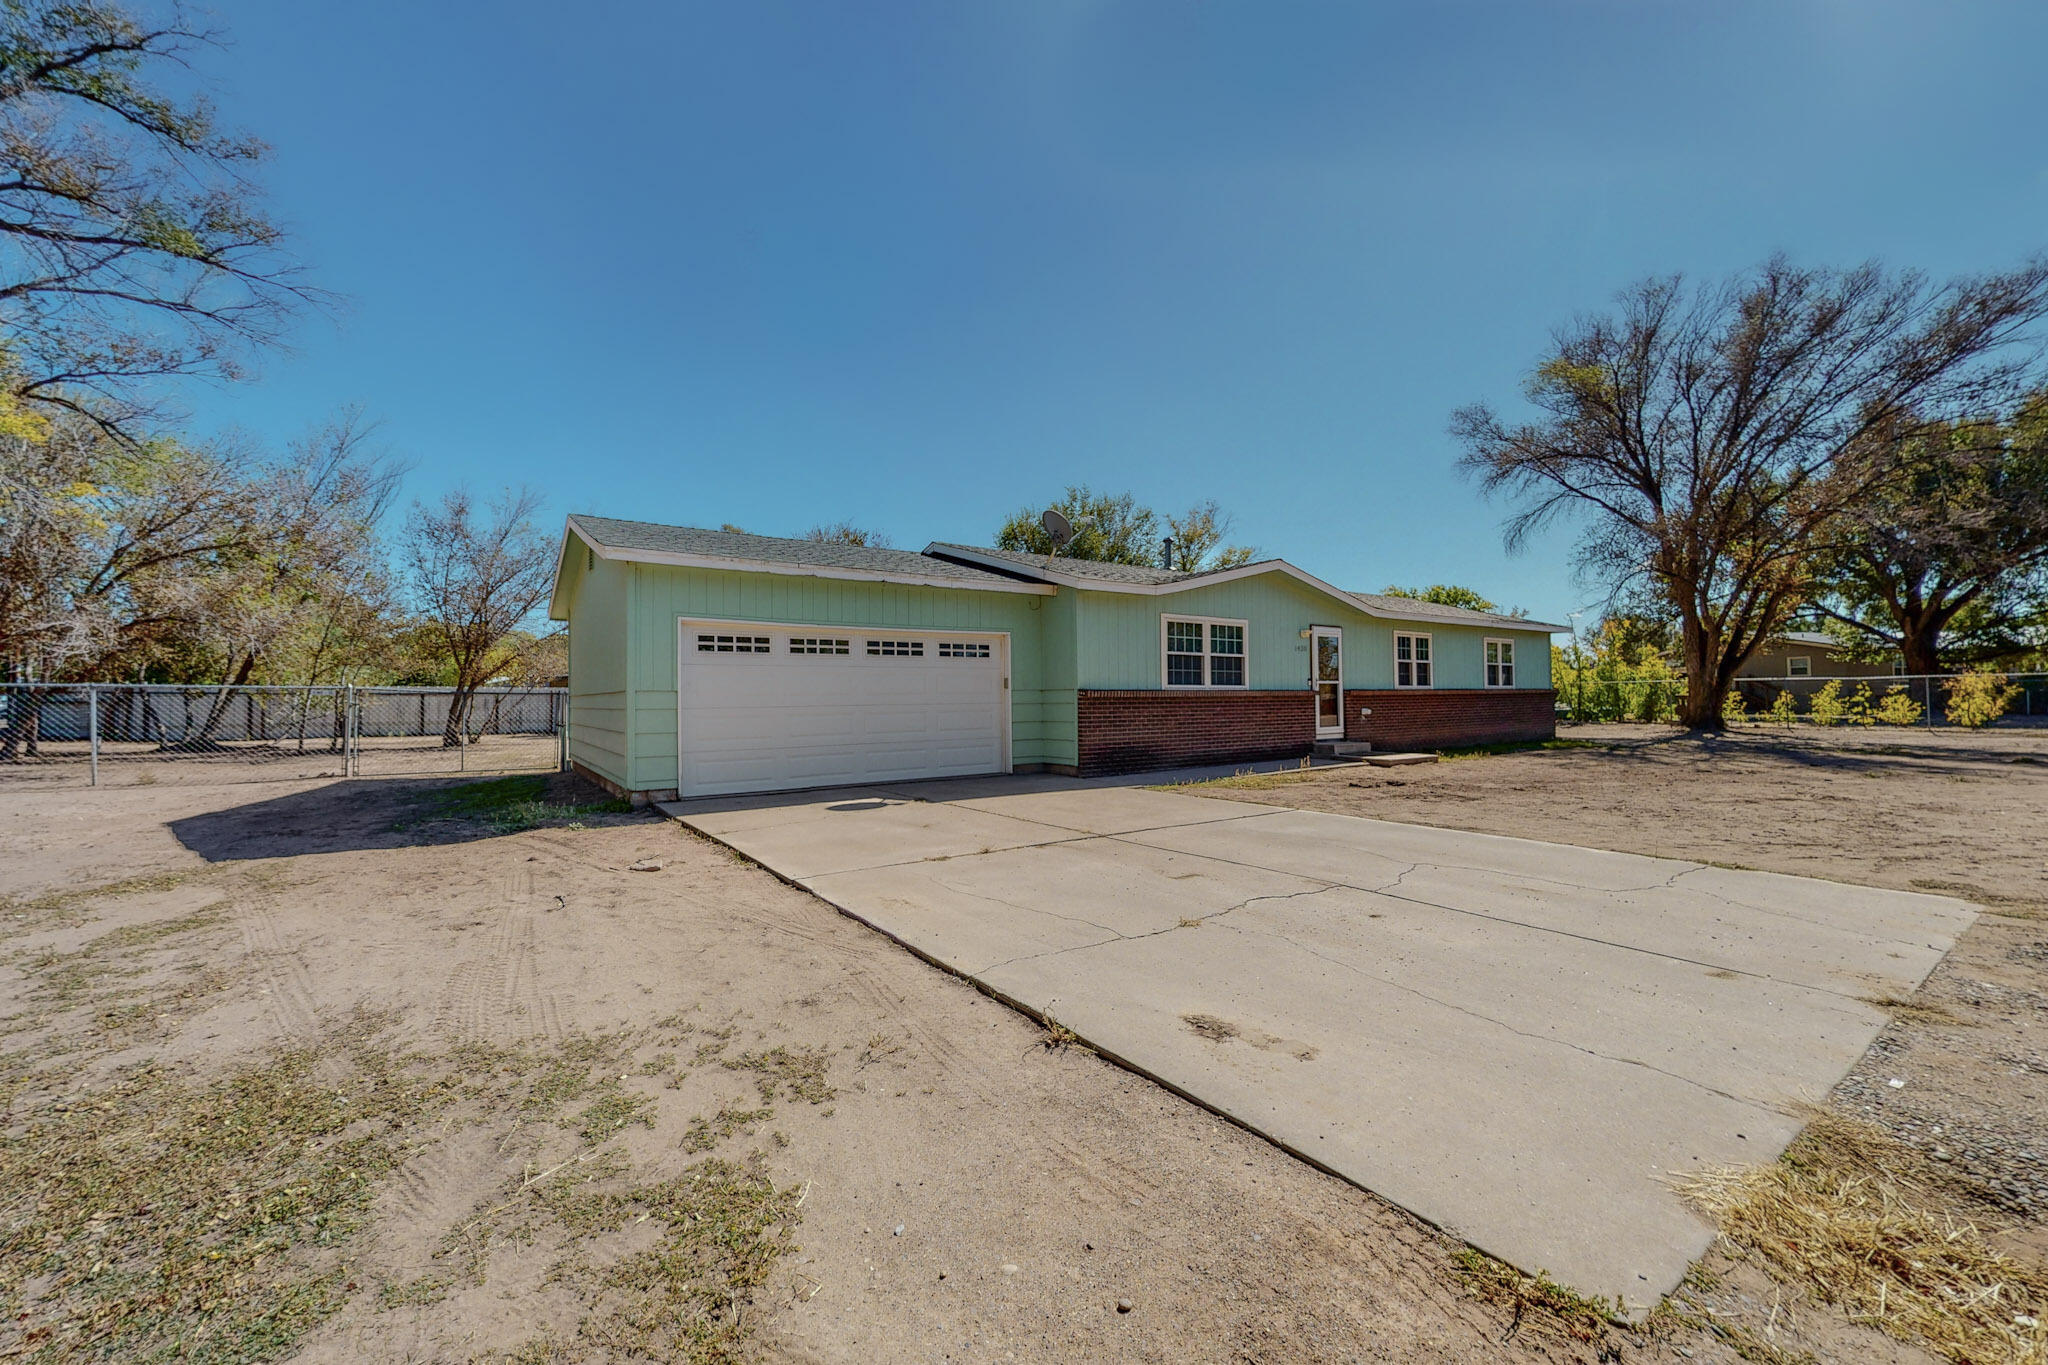 Single level in beautiful Bosque Farms. 3 bedroom with 1.75 baths located on a corner 1/2 acre lot.  One owner. Refrigerated air.  Brand new flooring. Newer roof with warrenty, New windows. City water, plus an irrigation well. Close to new elementary school!